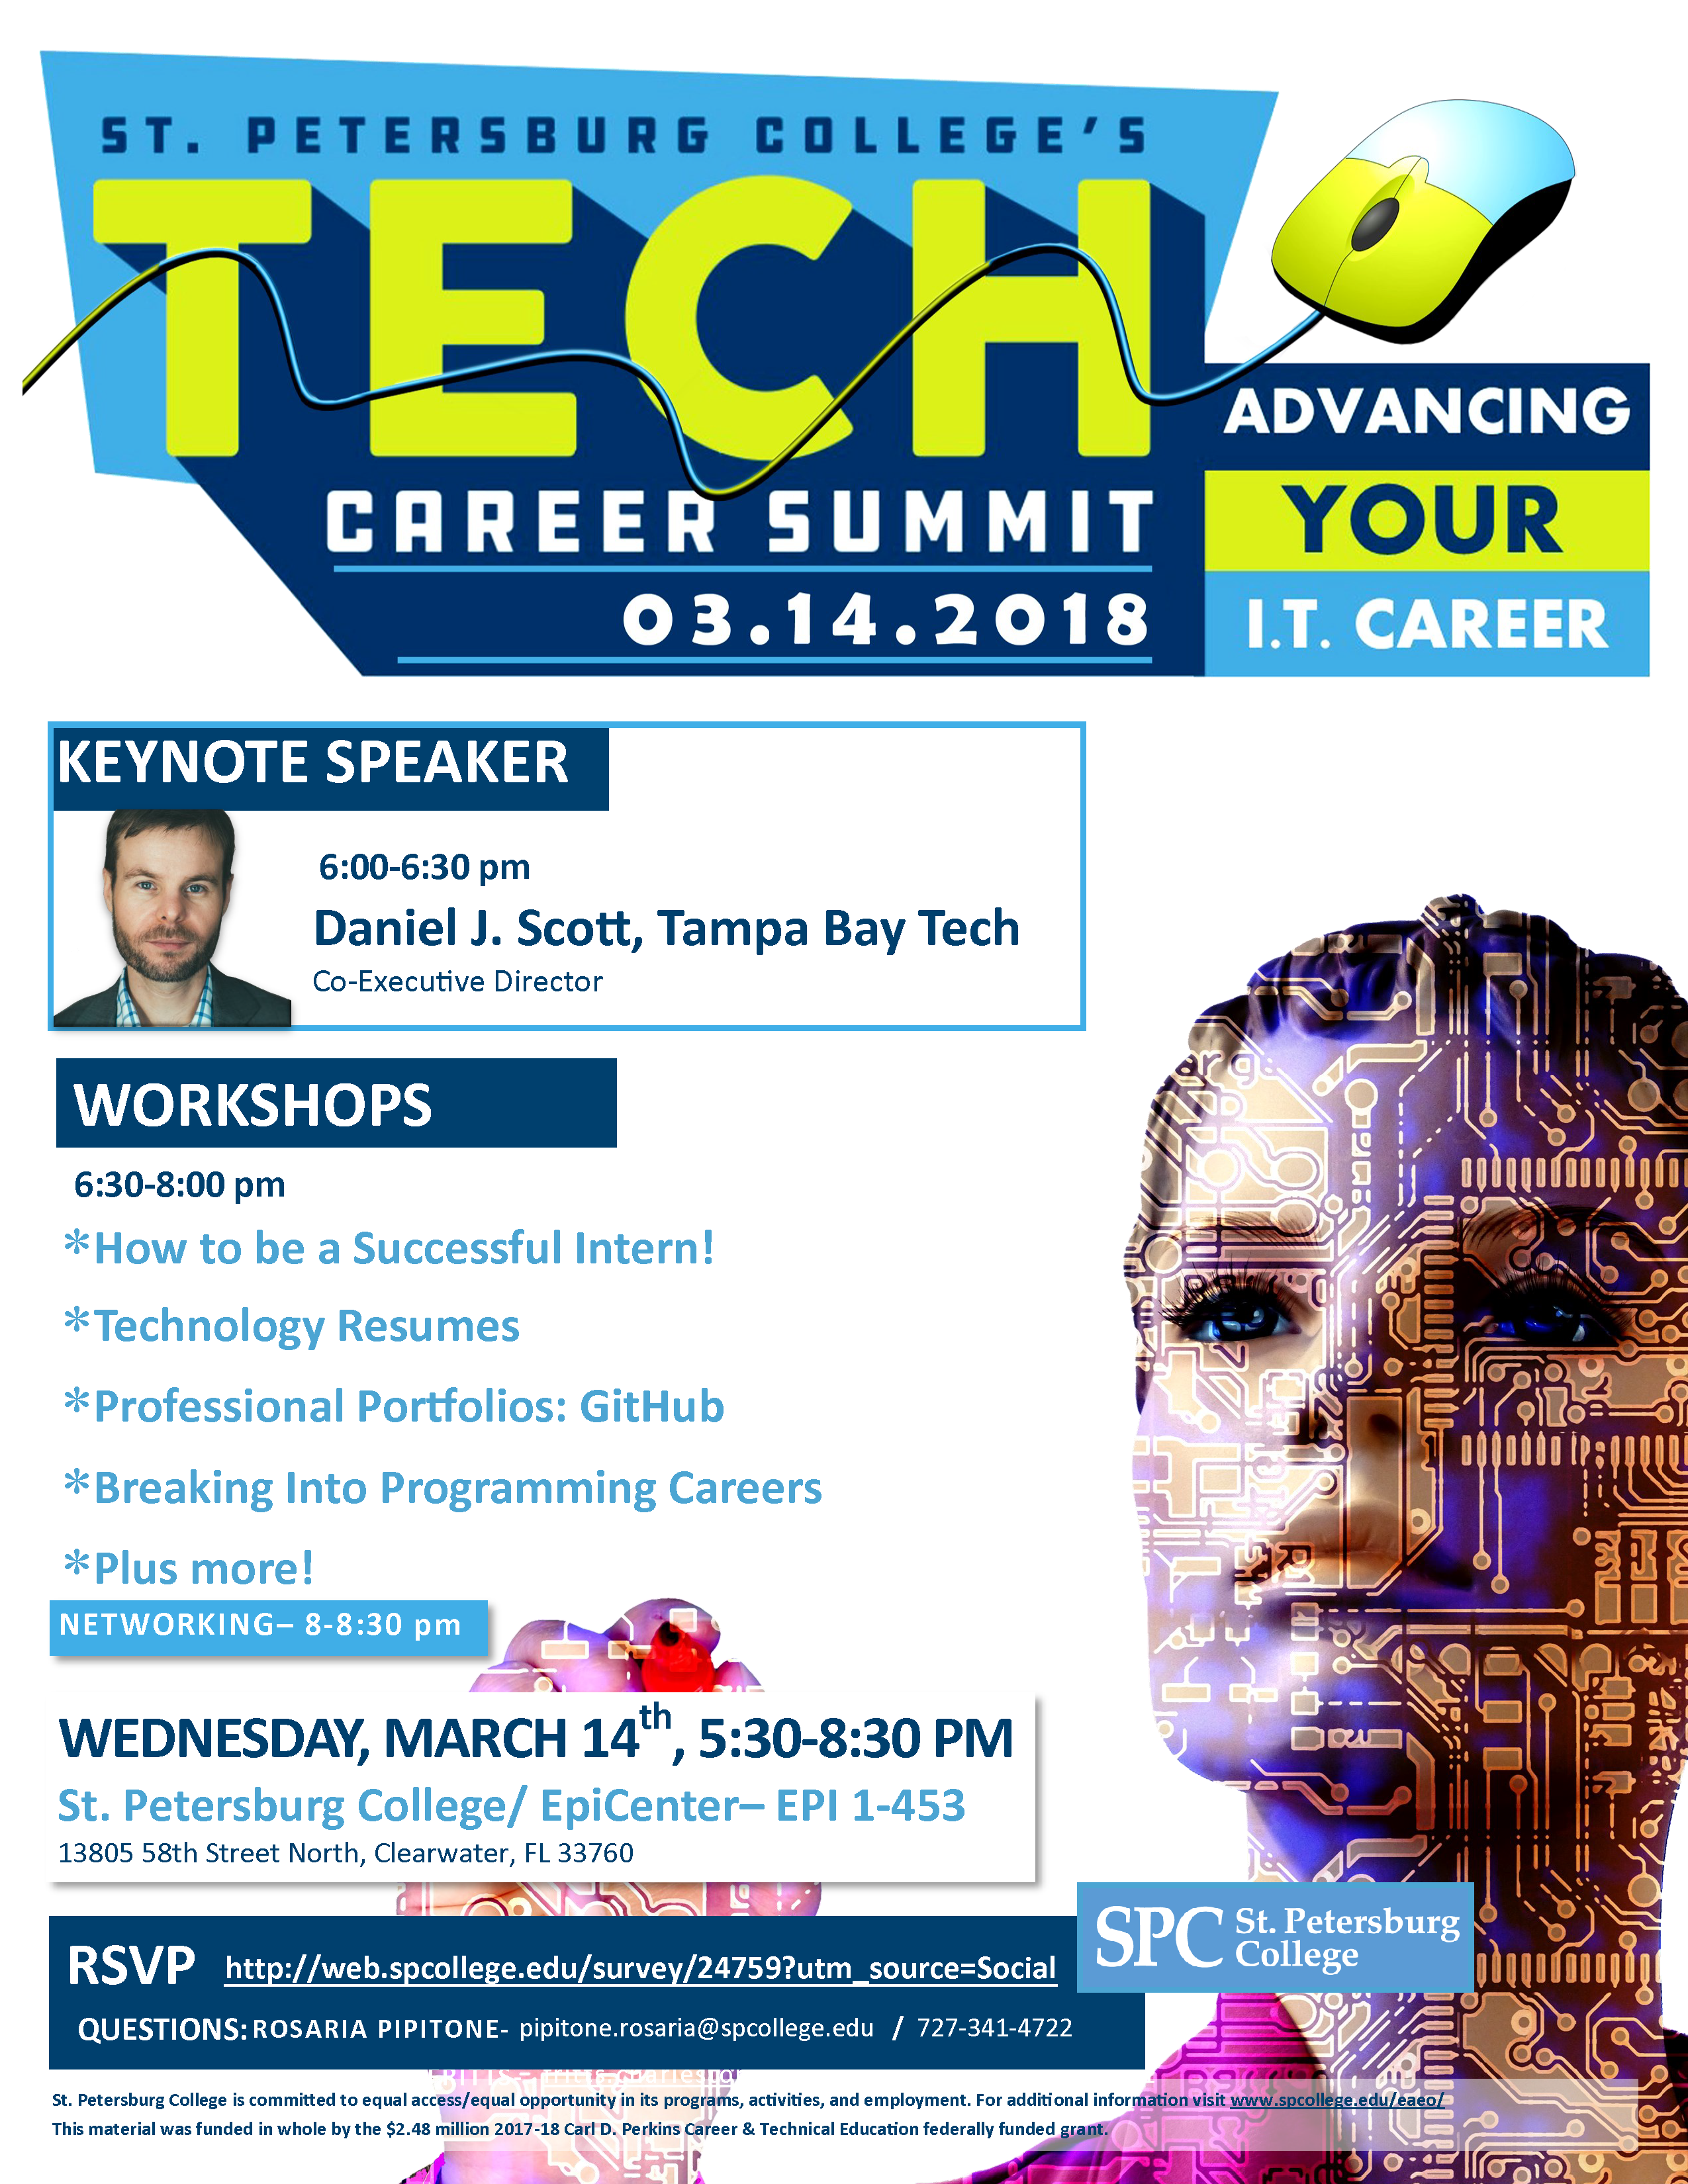 SPC presents the spring Tech Career Summit on March 14